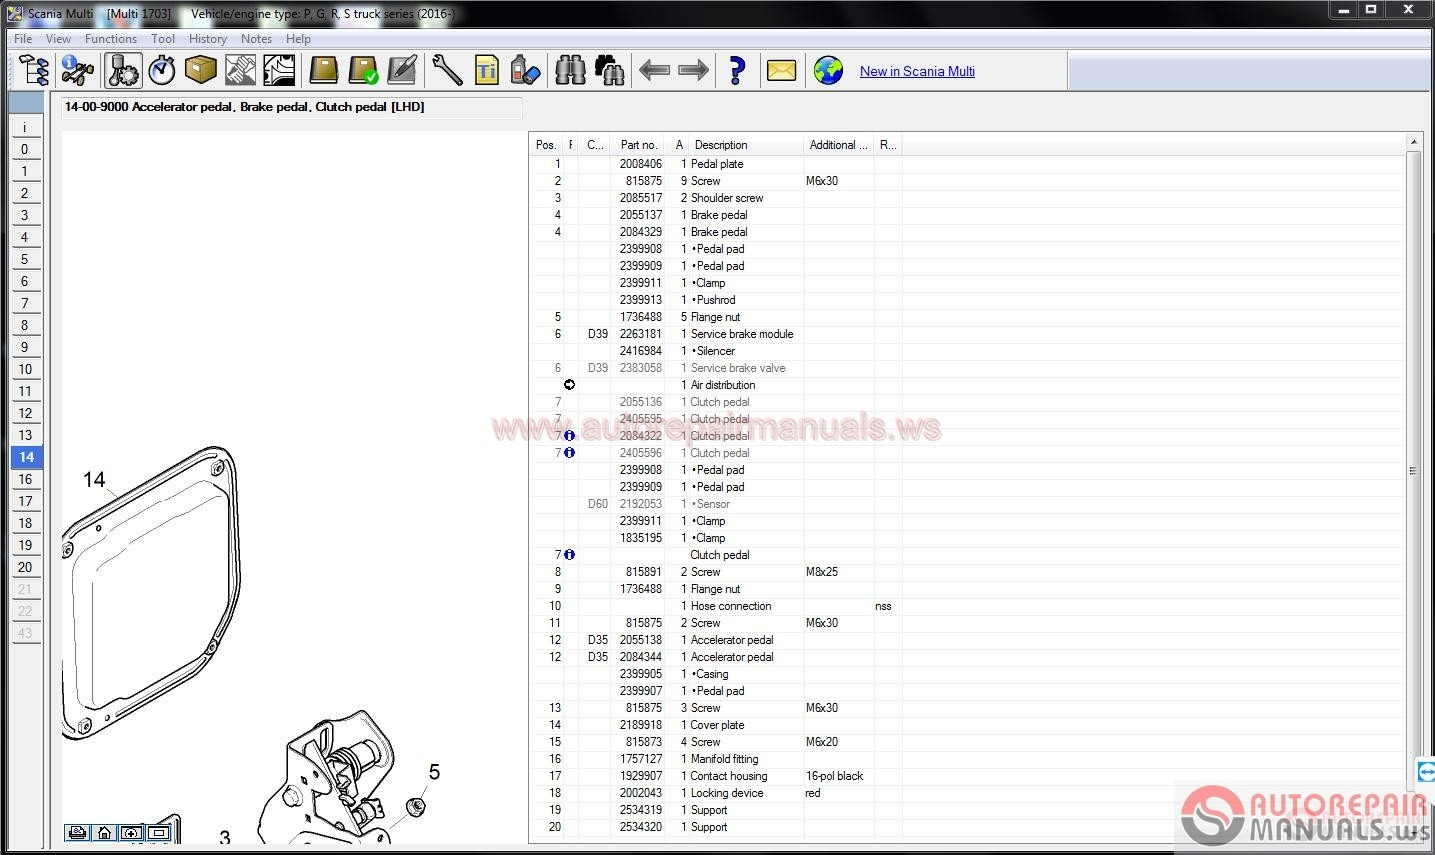 Scania_Multi_032017_Full_Instruction11 scania exhaust brake wiring diagram efcaviation com scania r series fuse box layout at gsmportal.co